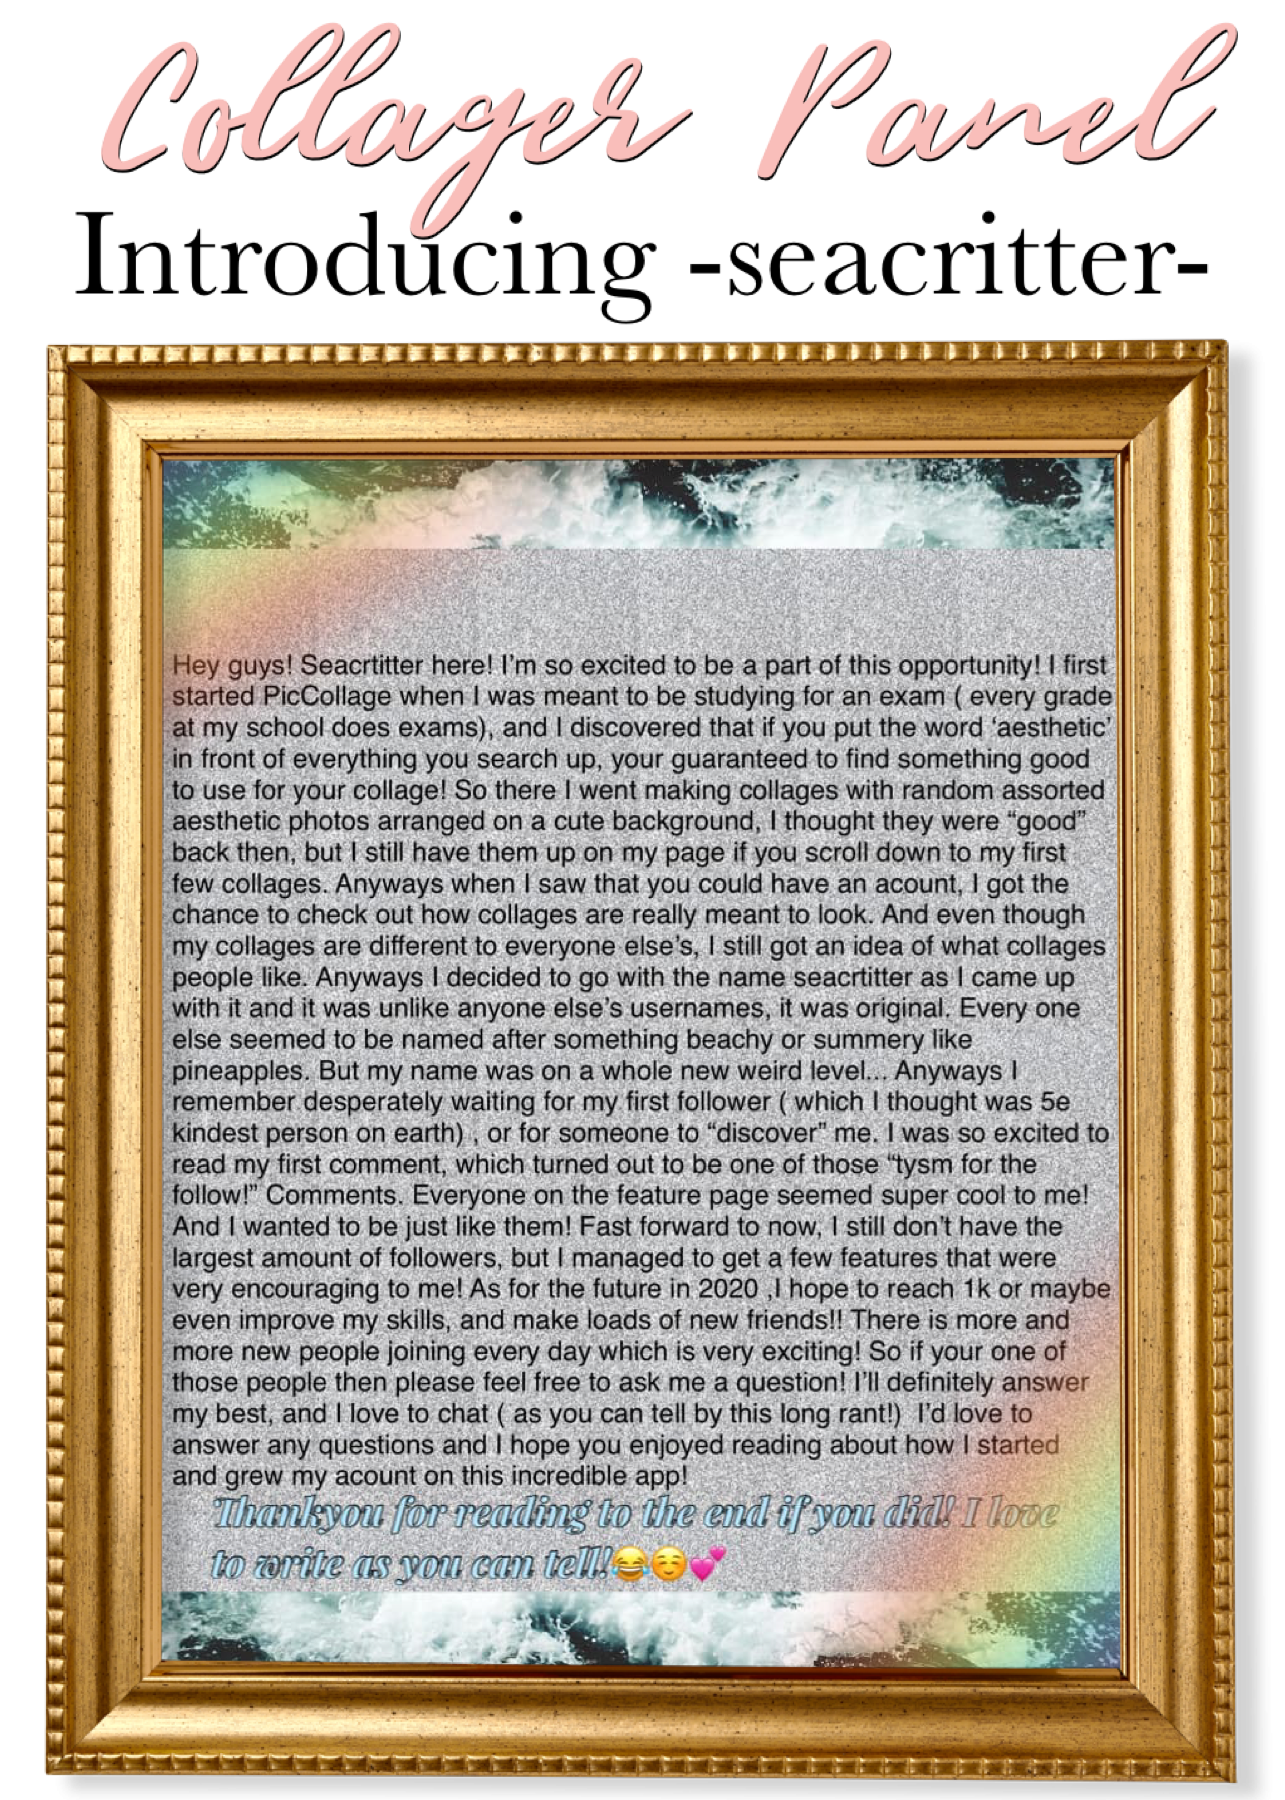 Introducing -seacritter-! Welcome to the Panel!